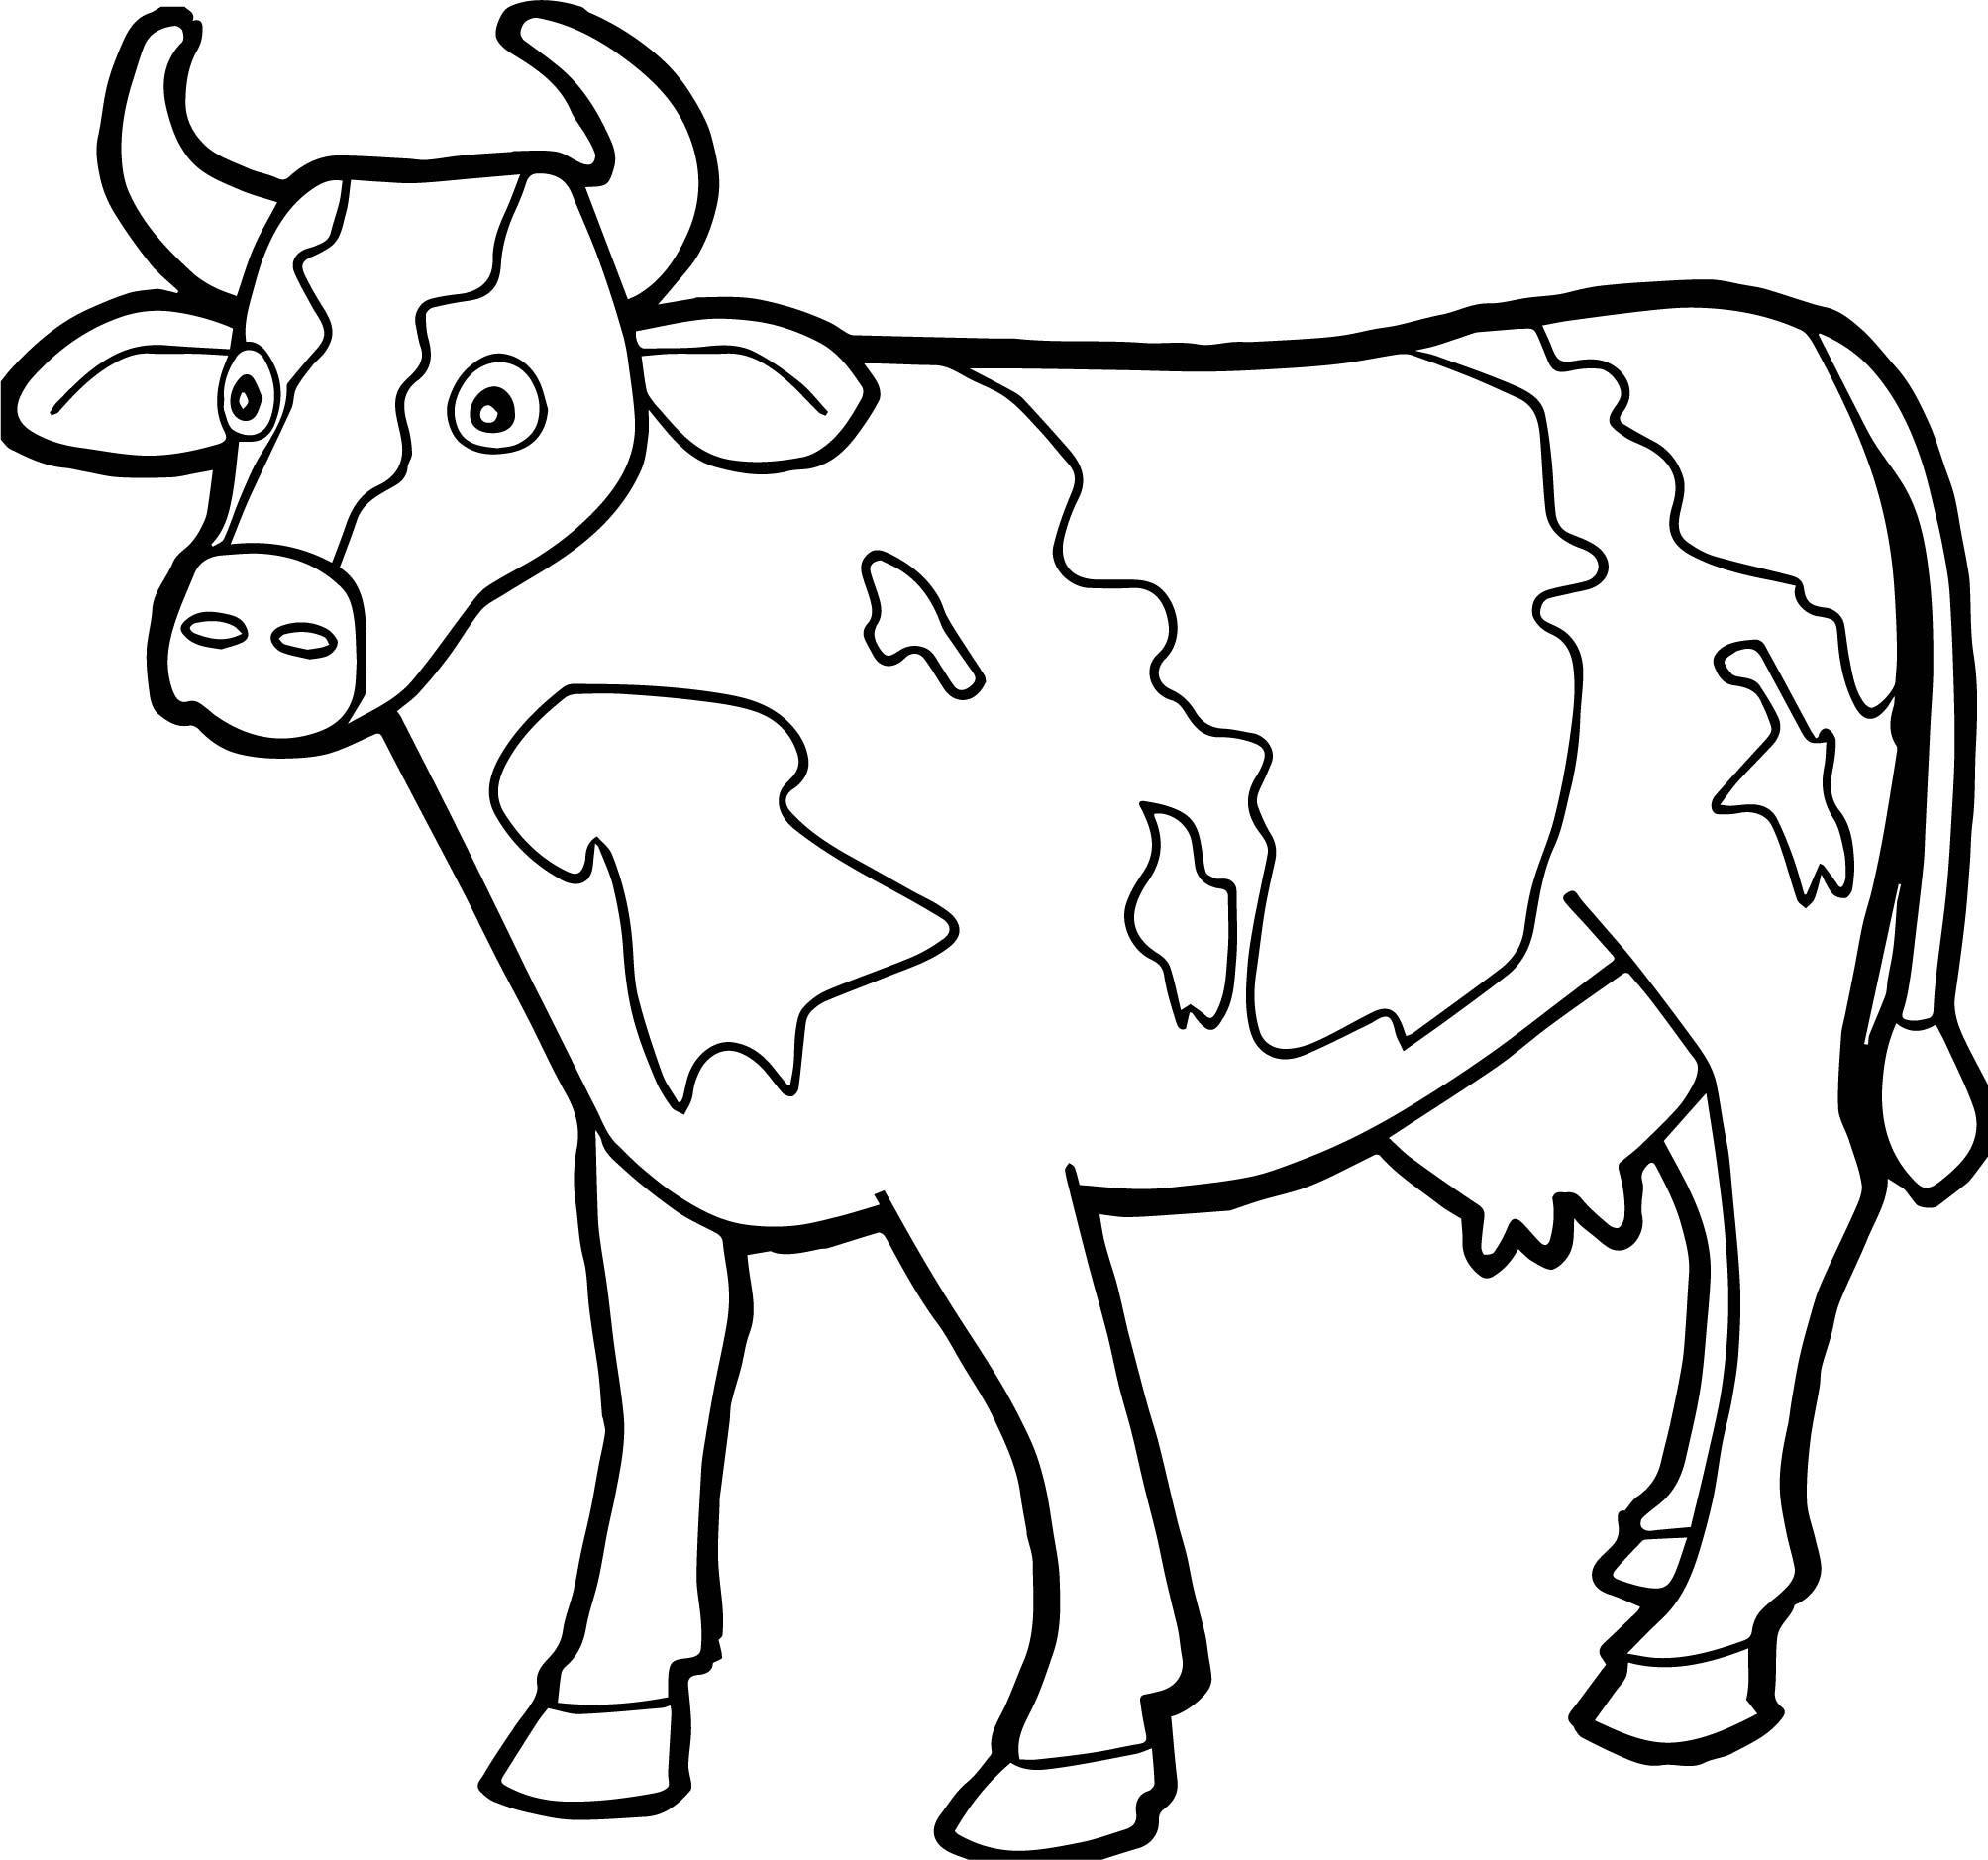 colouring pages of cow farm animal staying cow coloring page wecoloringpagecom cow of pages colouring